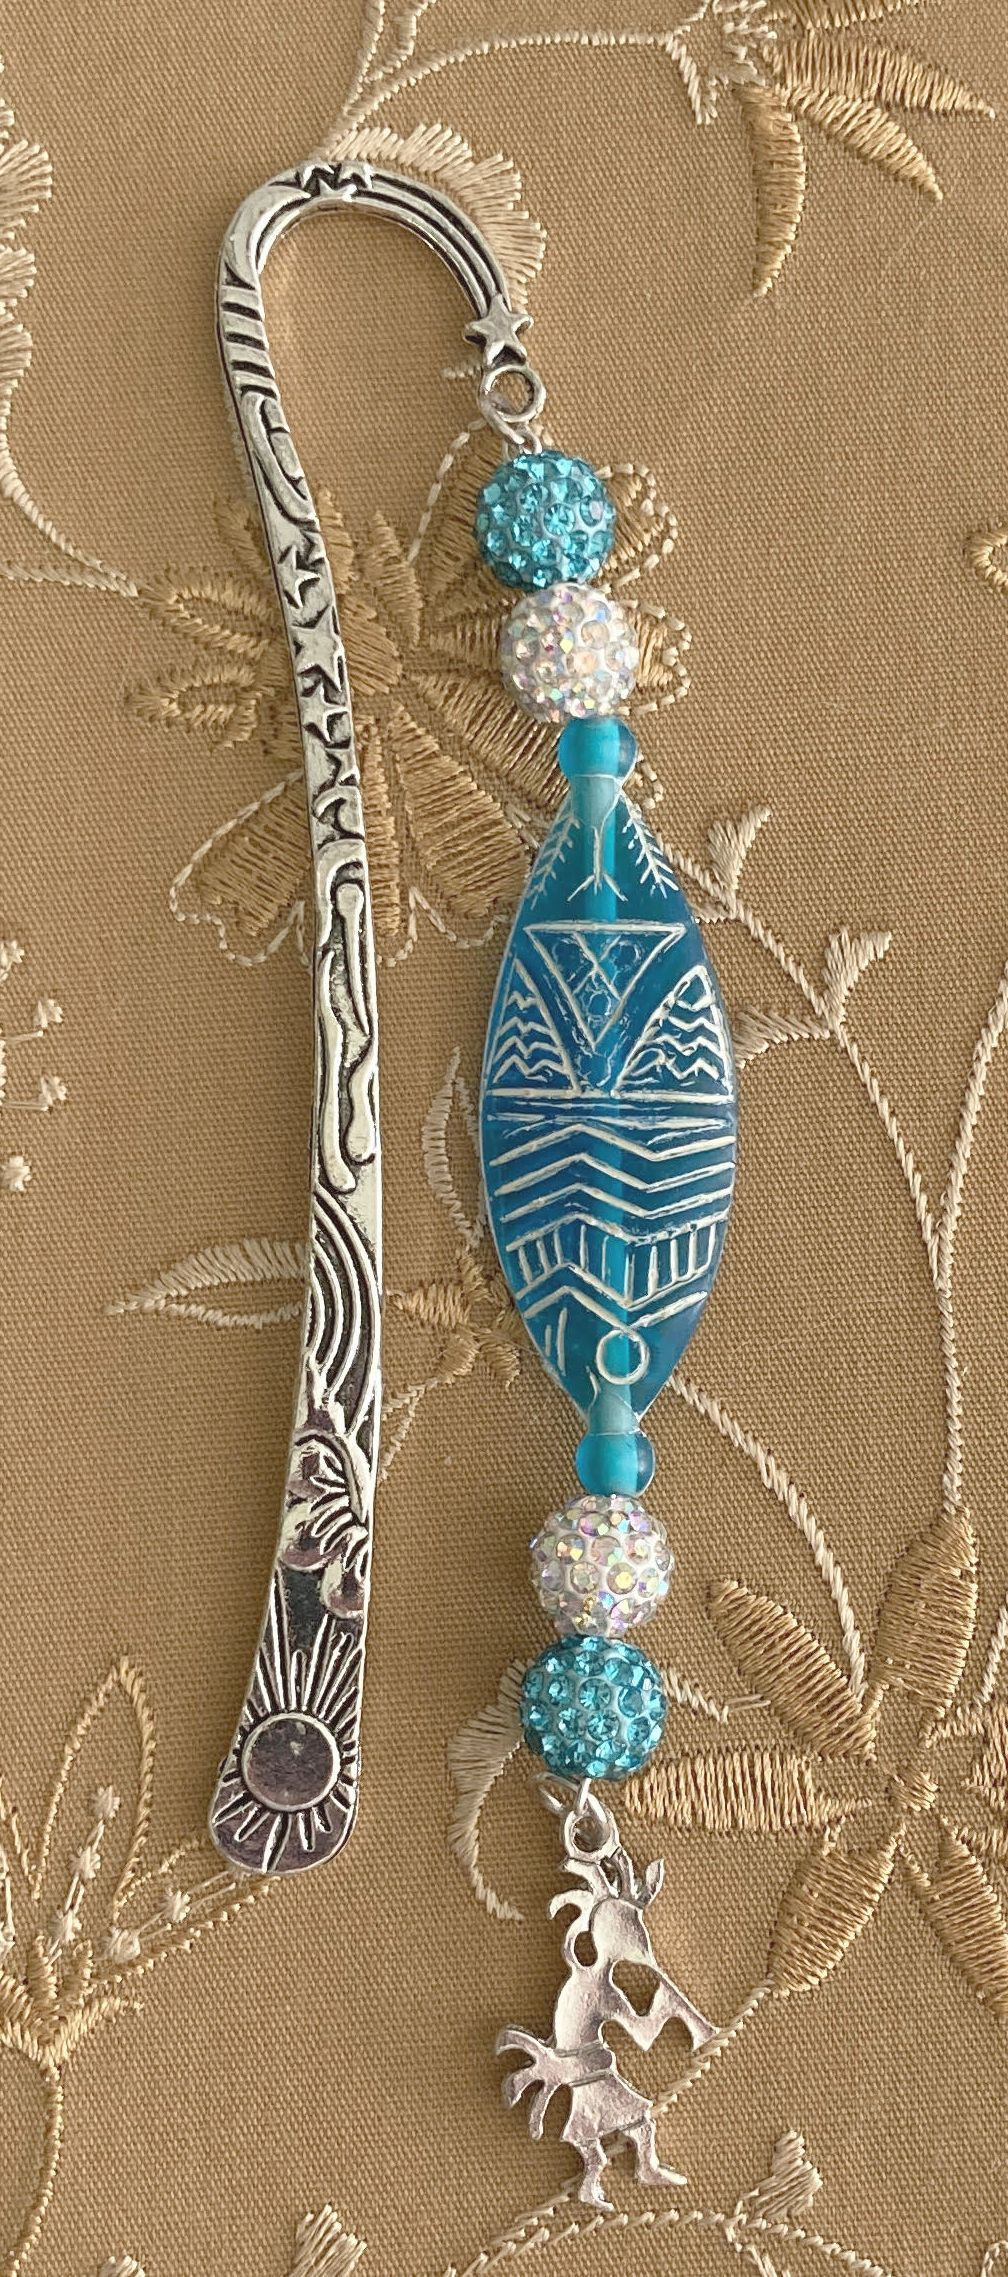 Stunning bookmark based on Native American deity Kokopelli who was also a flutist.  Sheperd hook is very well made and embellished.  The pendant has the look of Native American etcting.  Two beads one in bright blue and other is white has a great texture. At very bottom is a charm of Kokopelli.